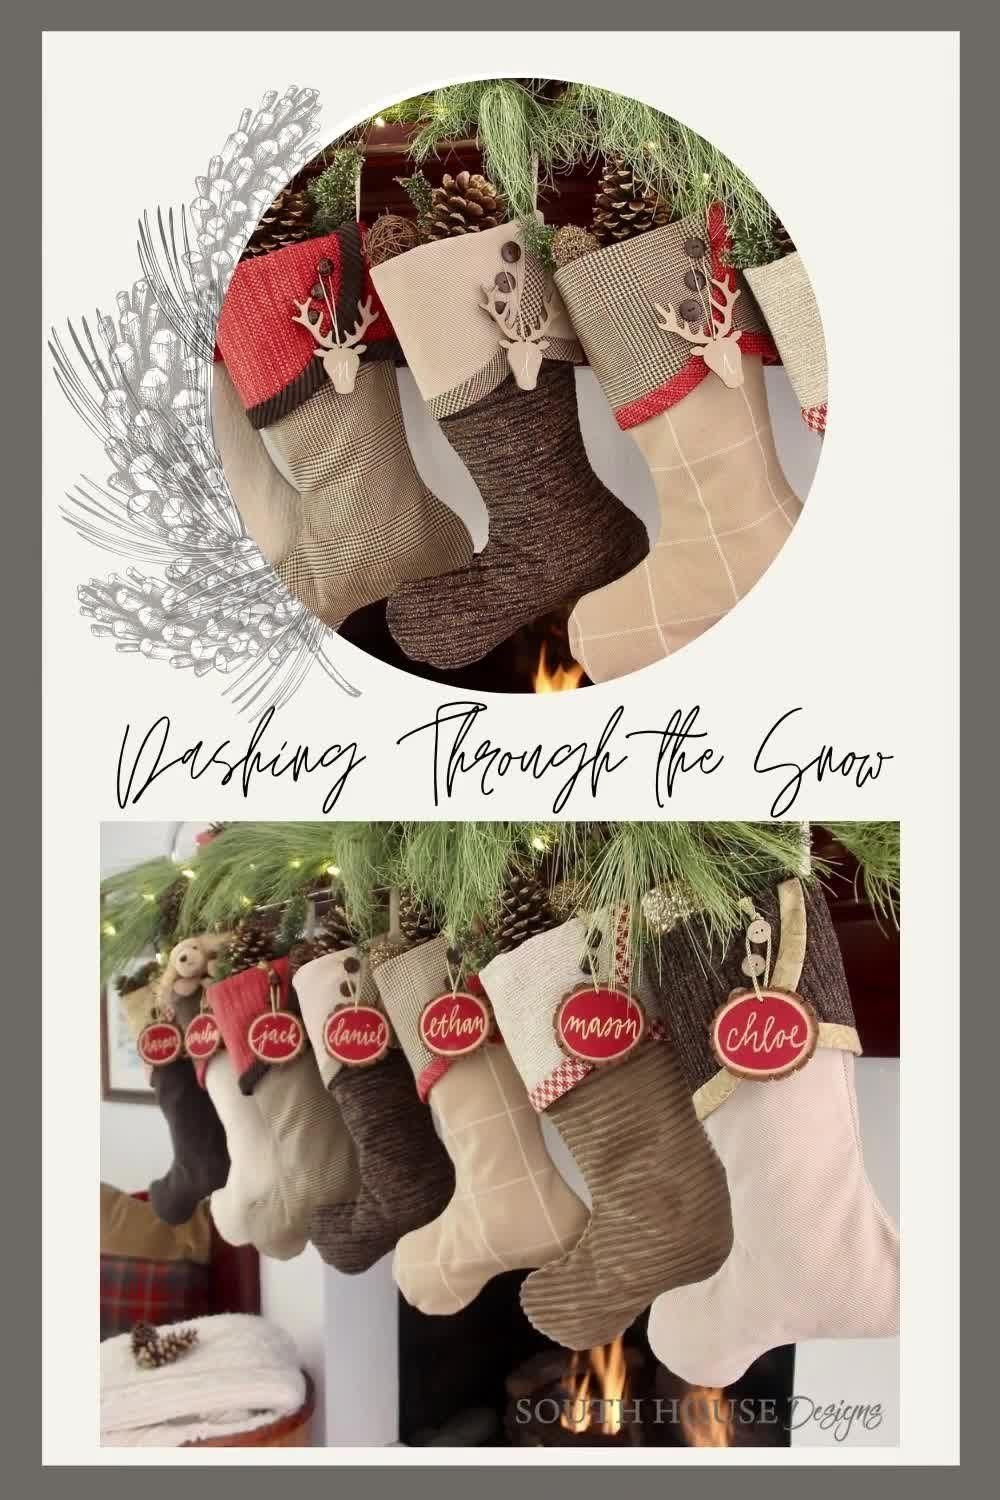 For a casual, earthy, rustic Christmas whether in a log home, ski lodge, mountain cabin, these stockings help set the tone. And they're from South House Designs so you know they are tailored of quality fabrics with the impeccable workmanship. #christmasstockings #rusticchristmas #redbrownchristmas #casualchristmas #cabinchristmas #southhousedesigns